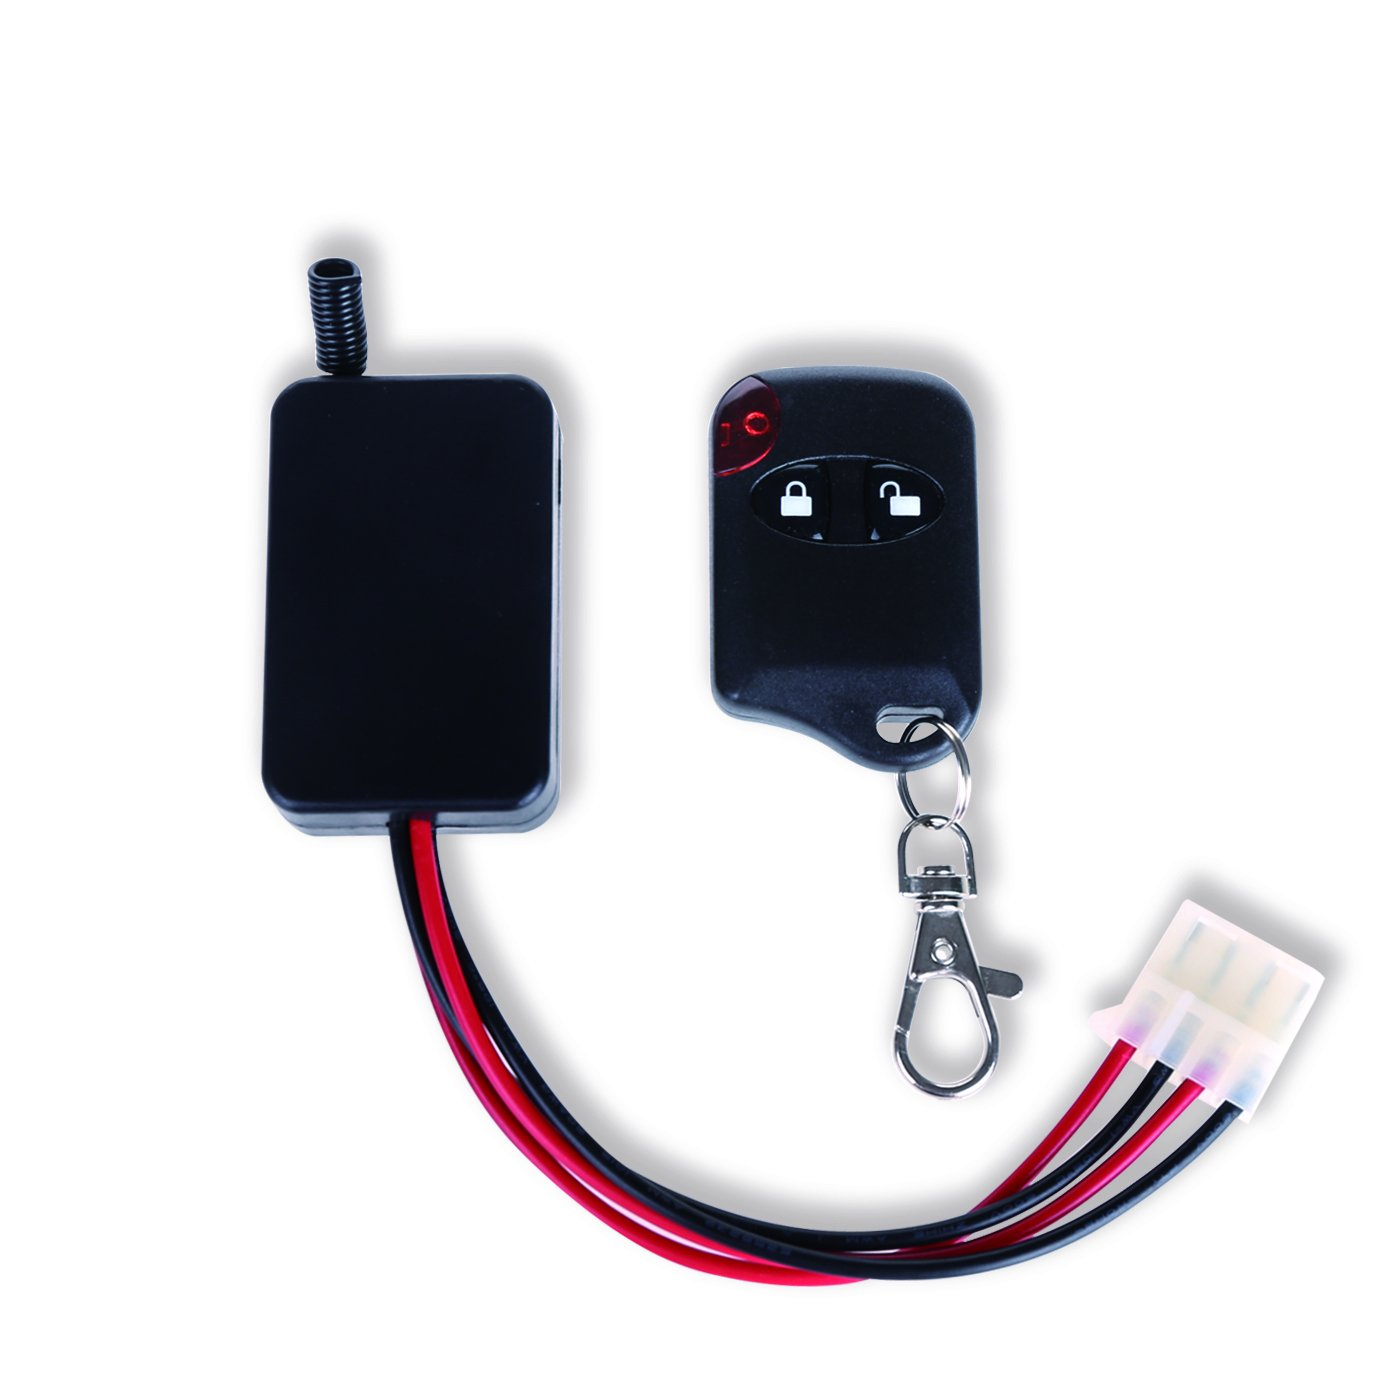 12vmonster Dc 6v Universal Remote Control Wireless 12 Volt Rf Latching Switch Light On Off Youtube And Receiver Set Toys Small Motors Mojo Duck Decoy Wiring Harness